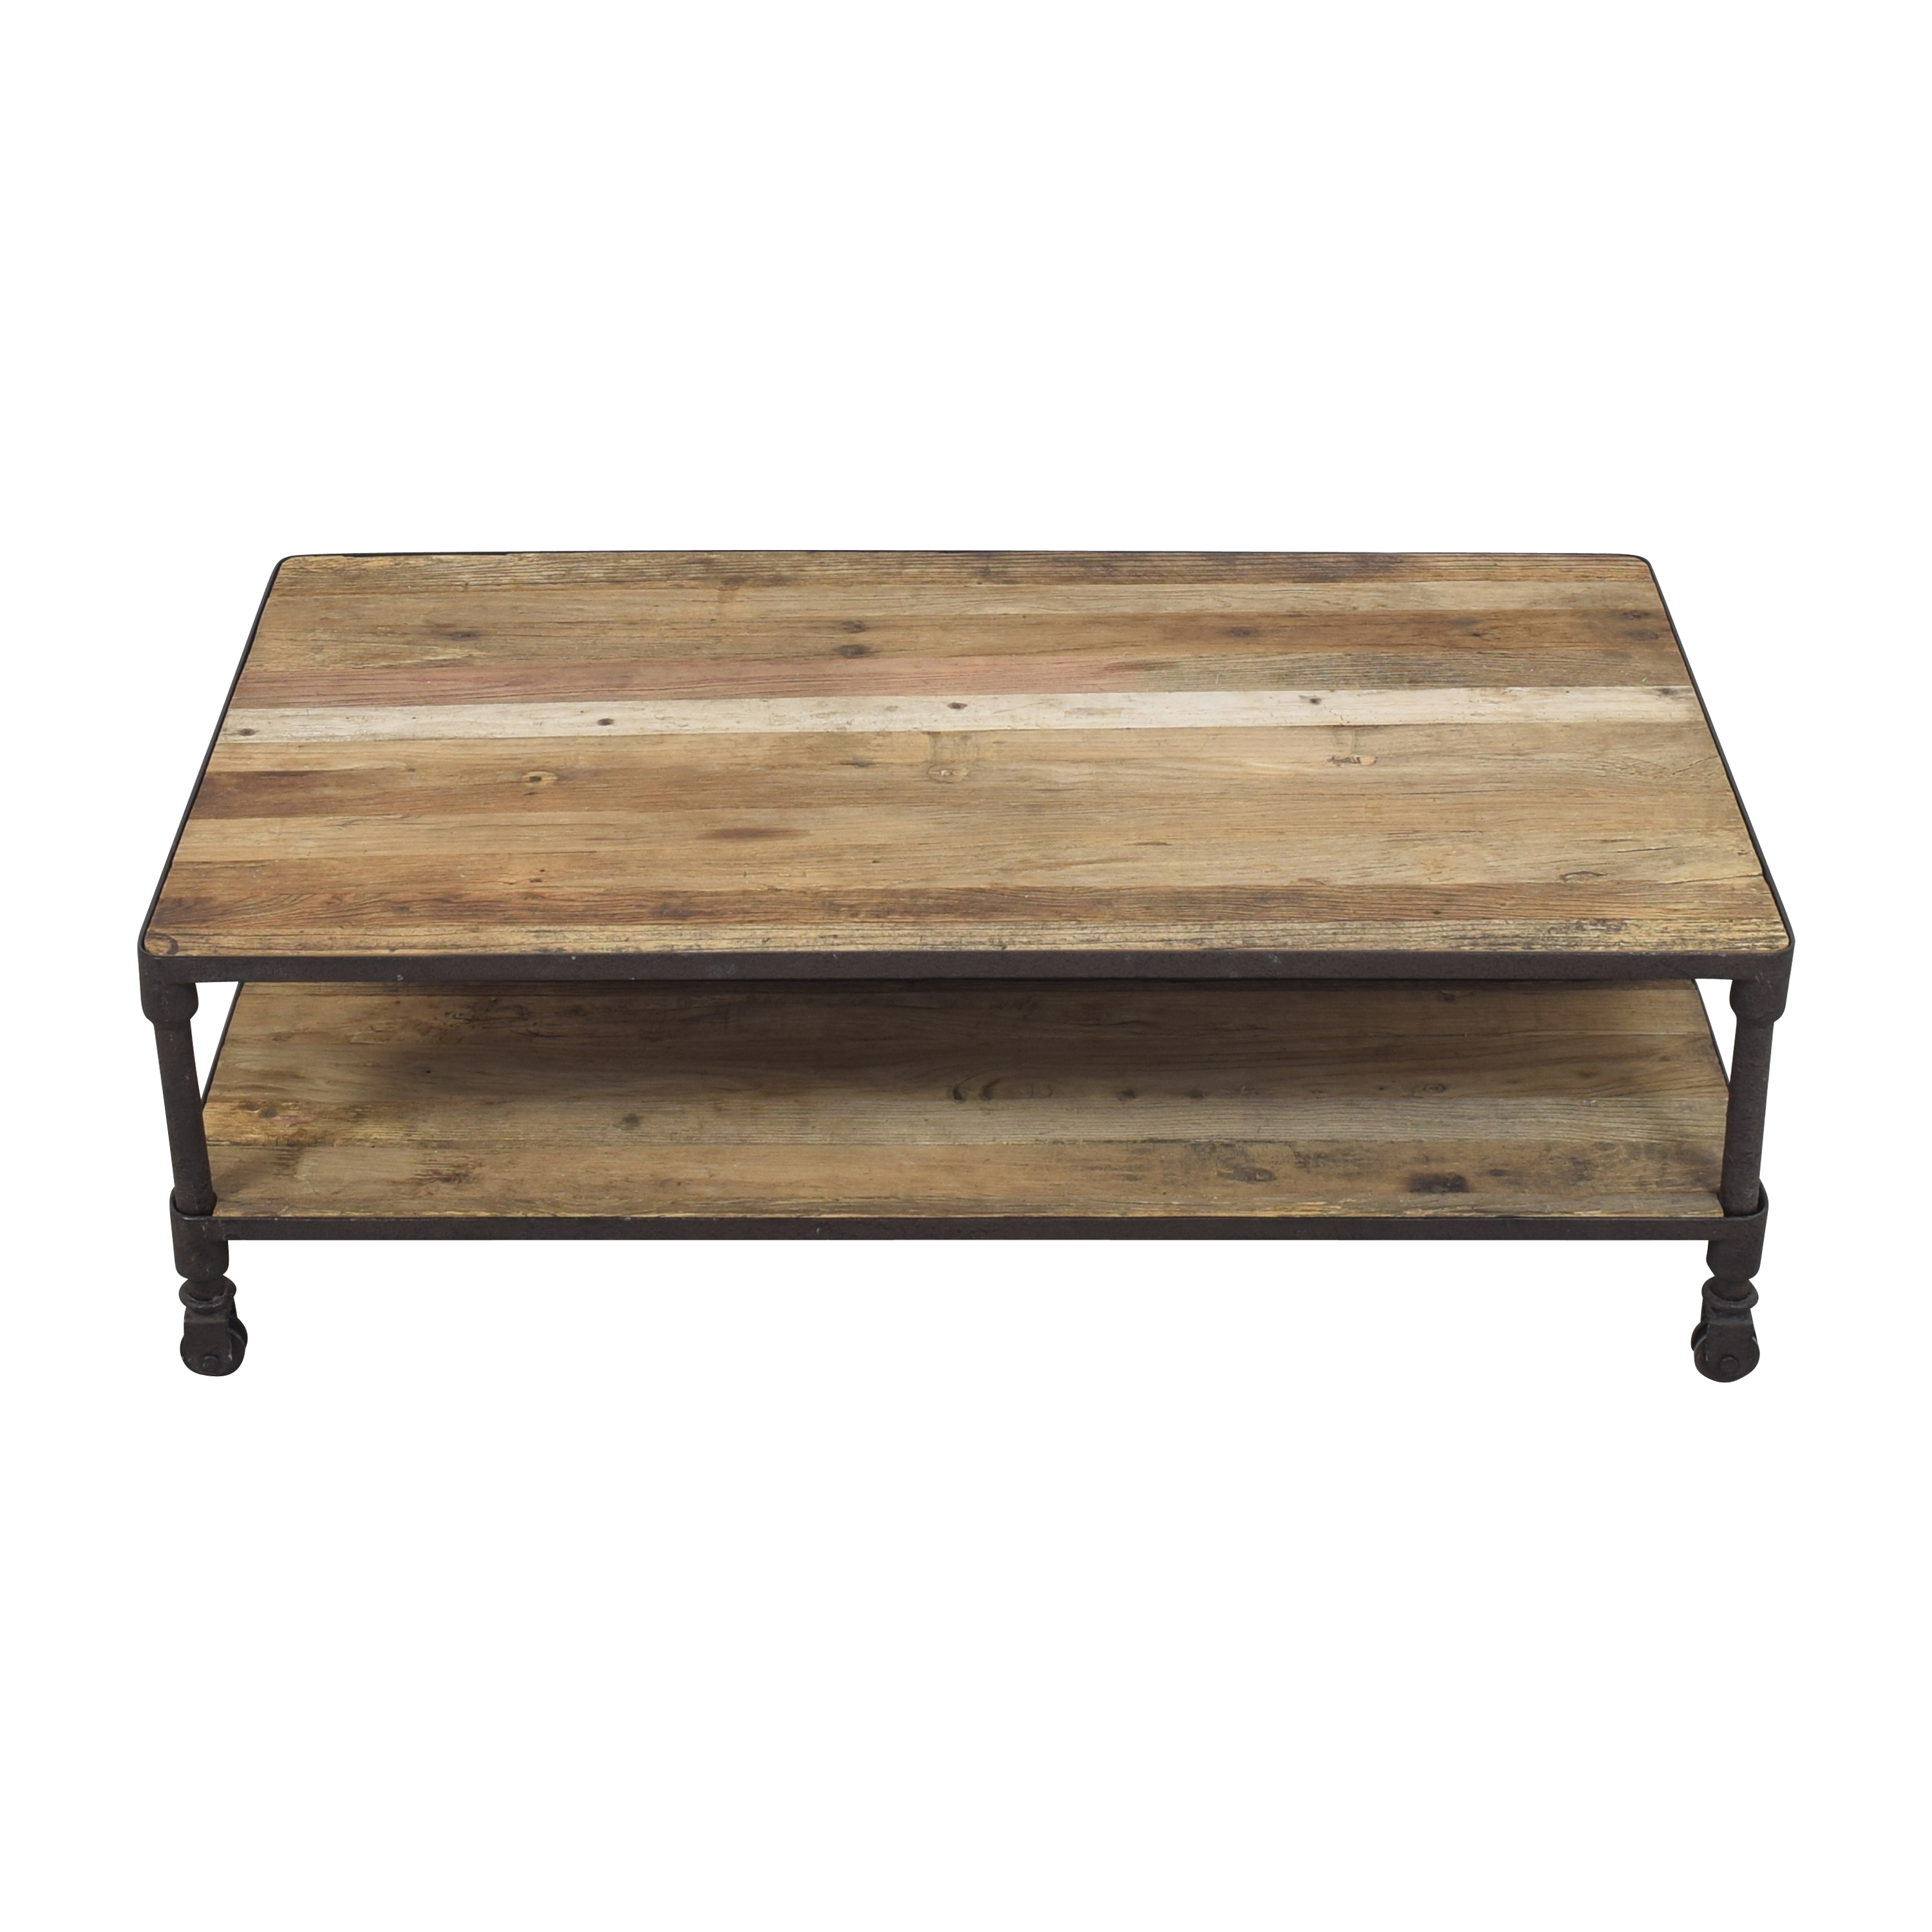 Restoration Hardware Restoration Hardware Dutch Industrial Coffee Table Coffee Tables